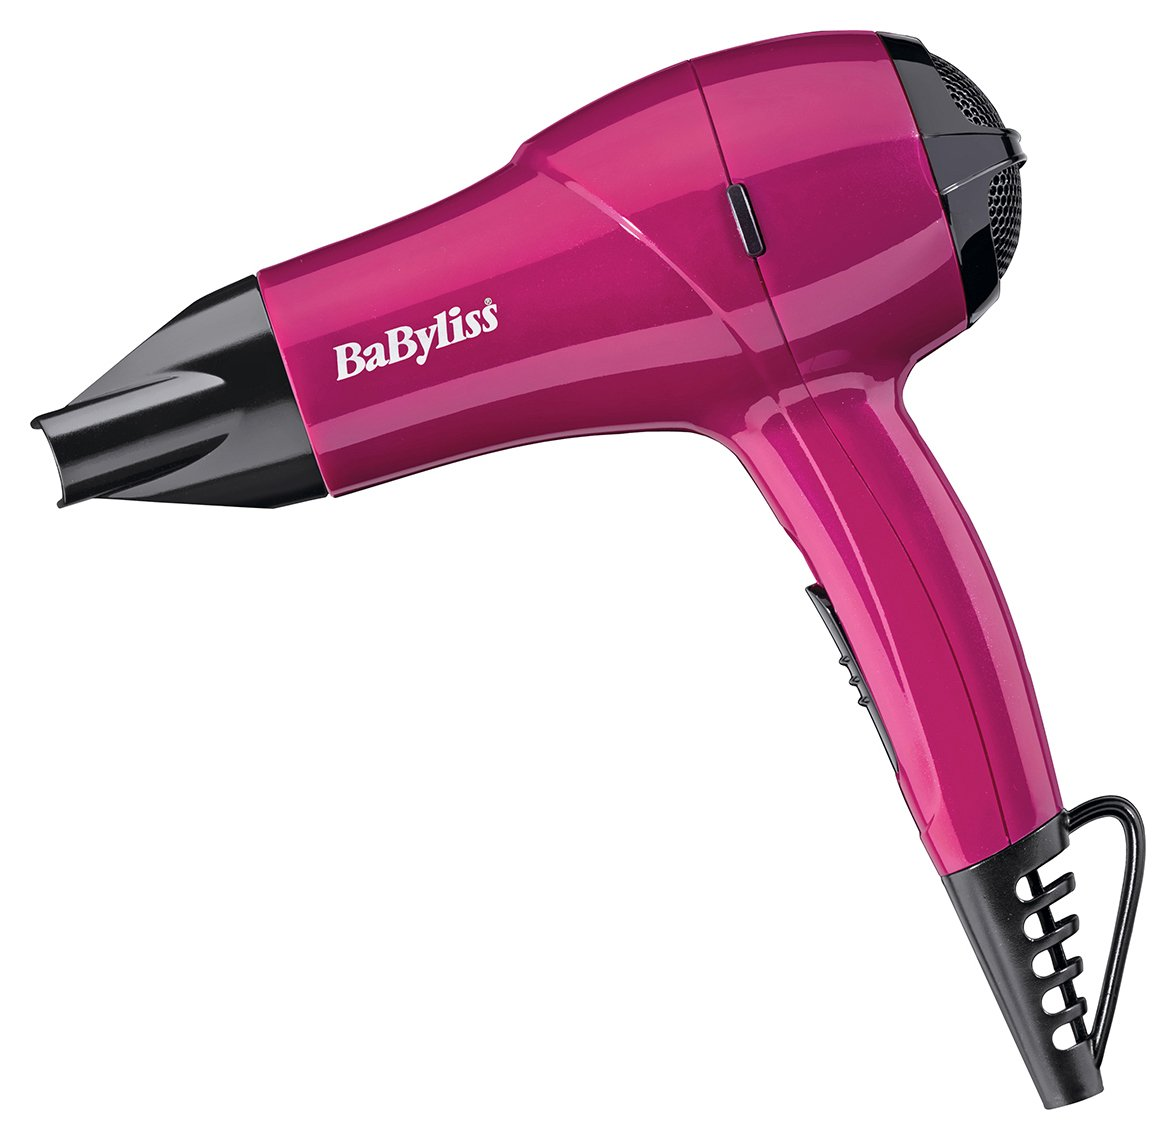 'Babyliss - Nano 1200w - Hair Dryer